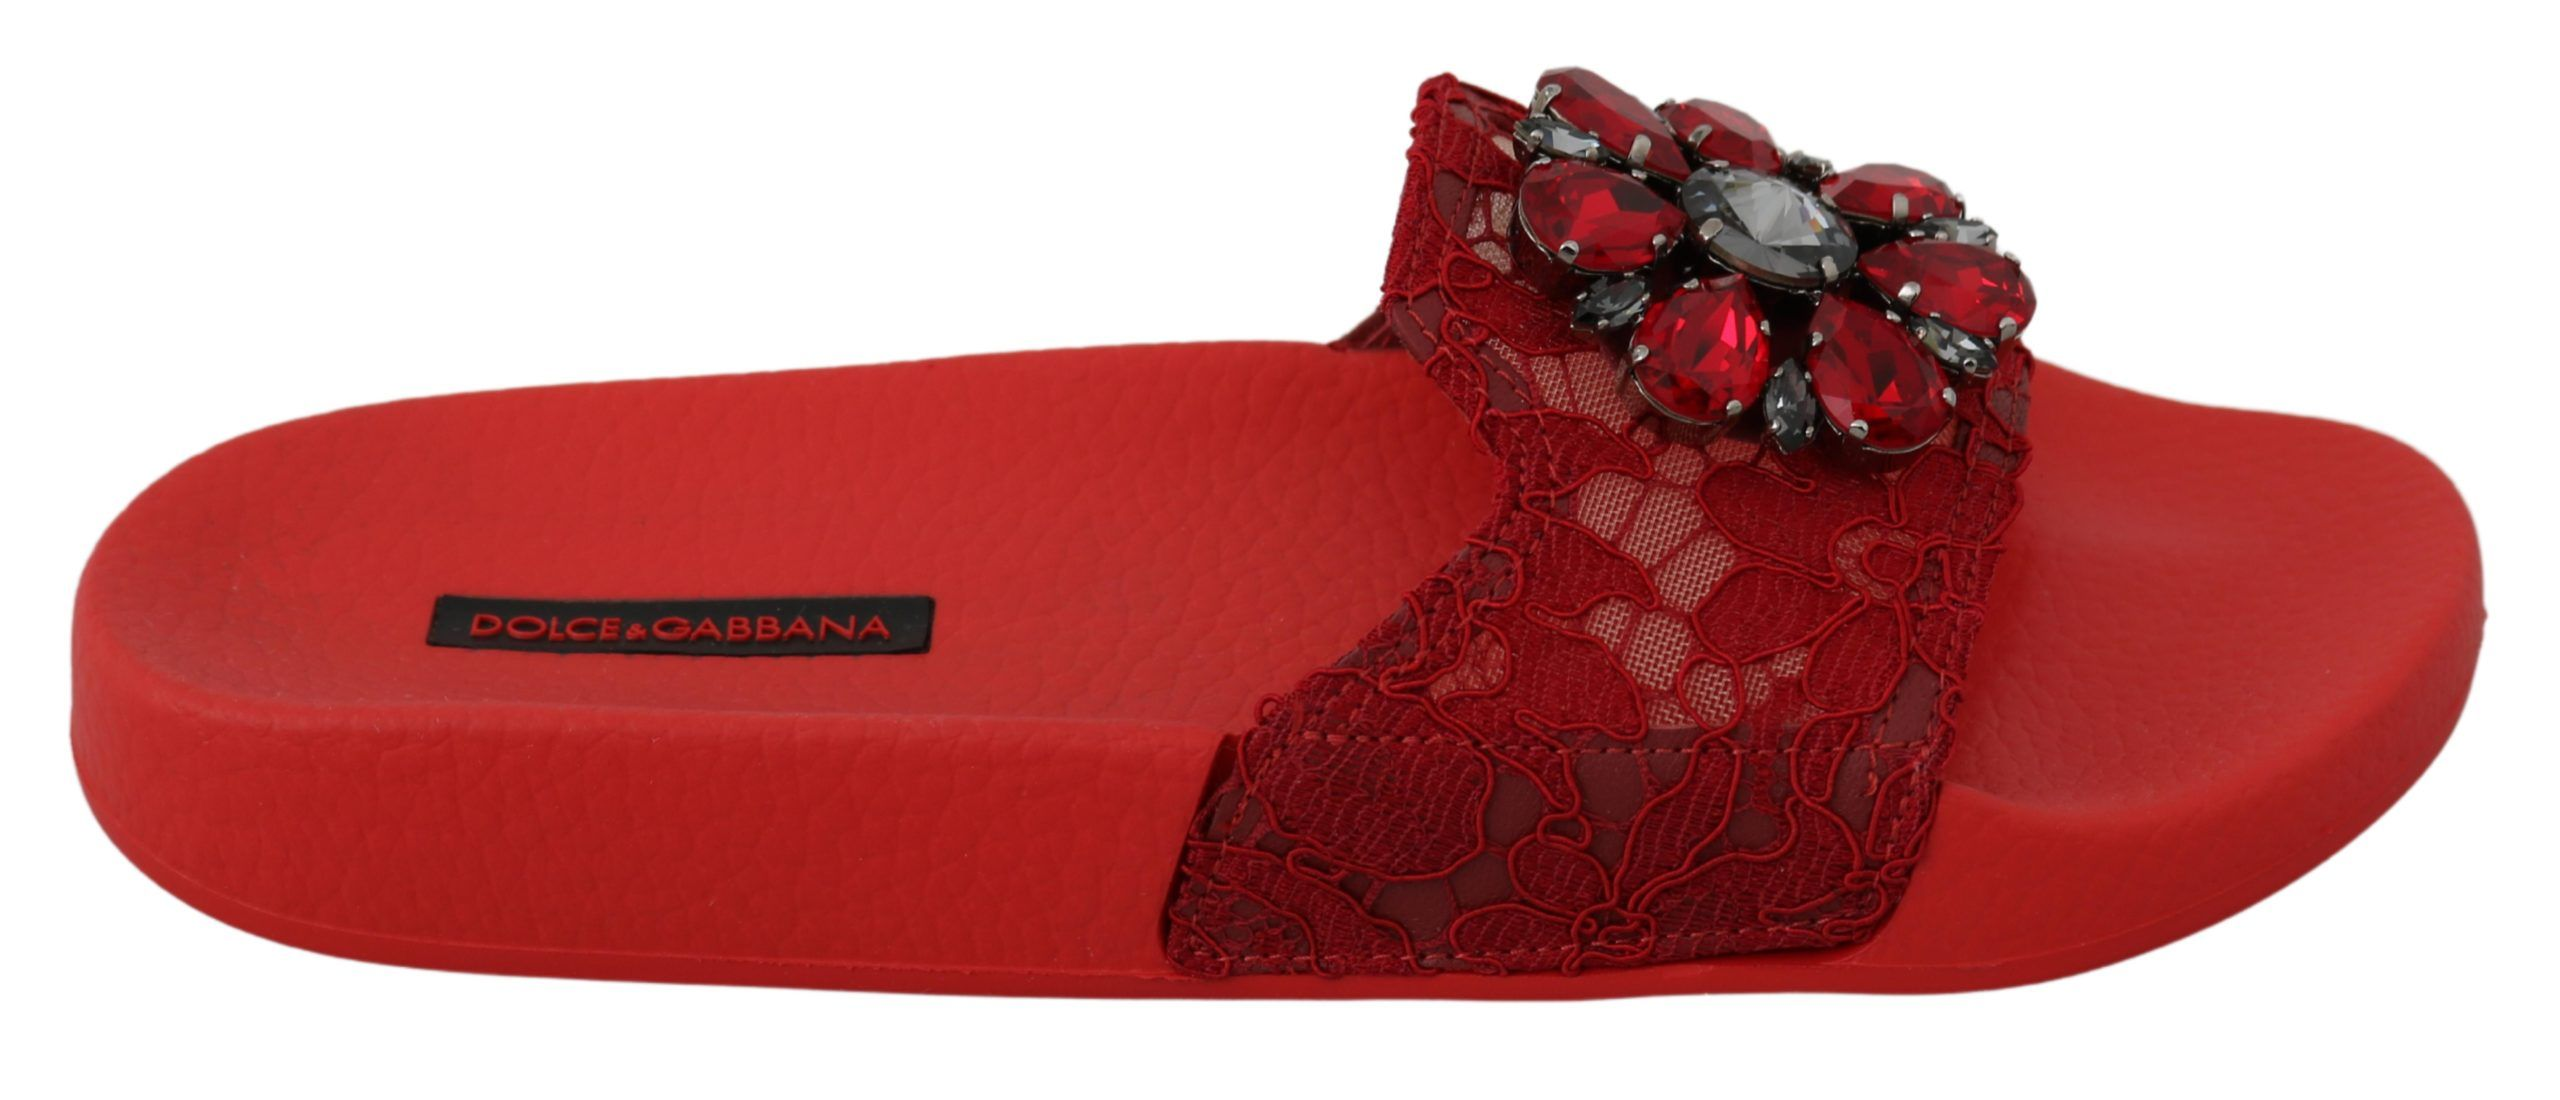 Dolce & Gabbana Red Lace Crystal Sandals Slides Beach Shoes